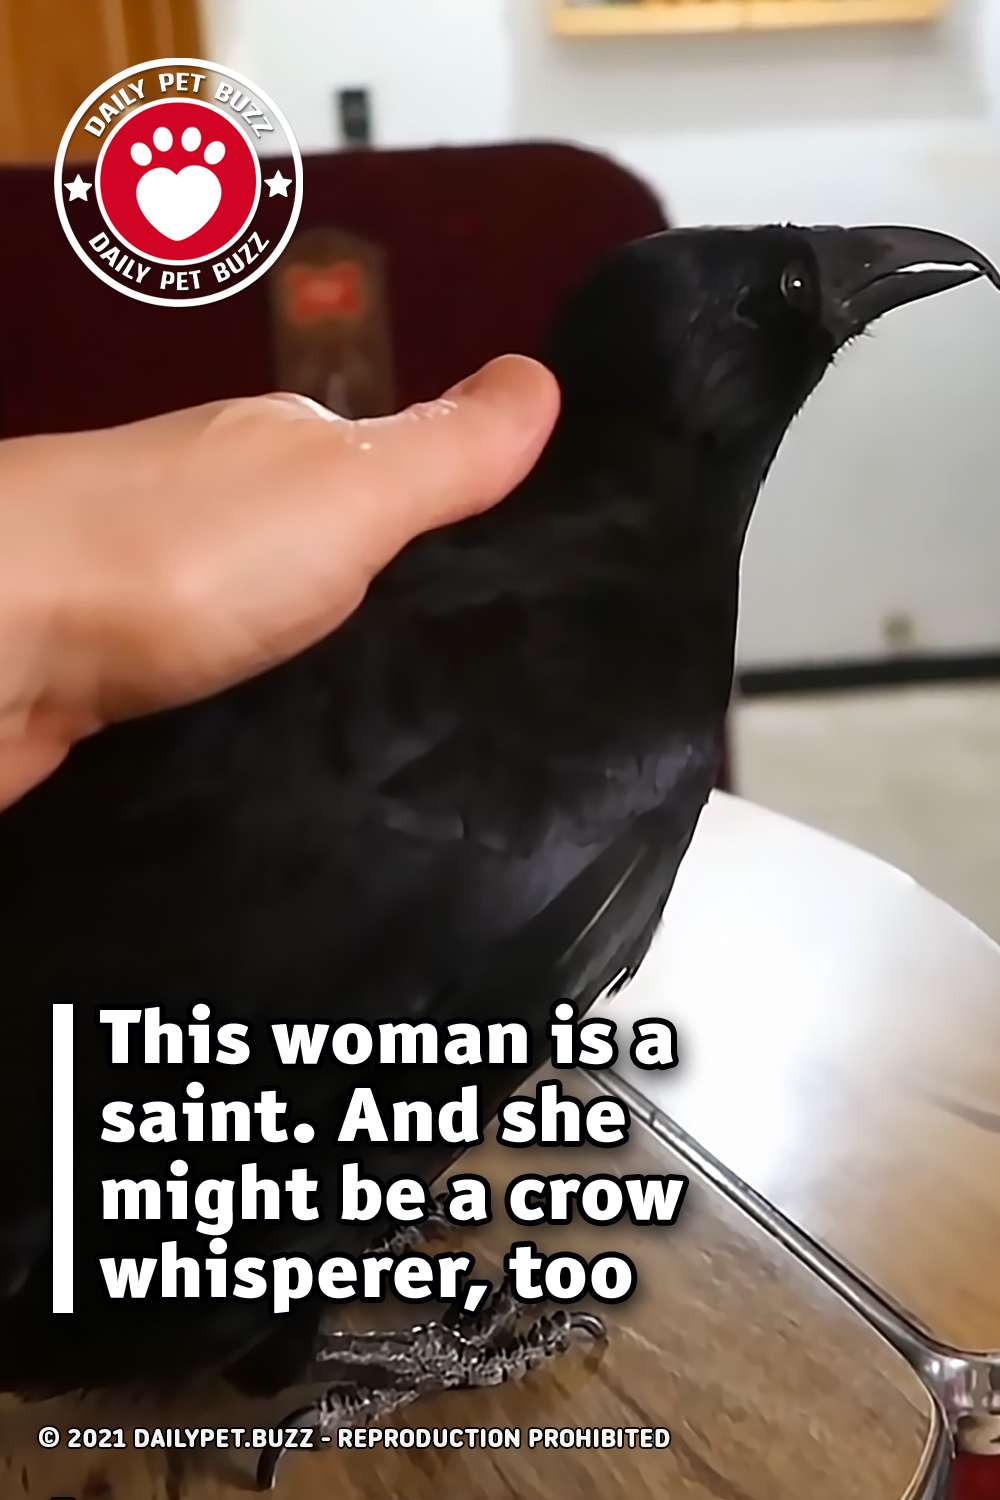 This woman is a saint. And she might be a crow whisperer, too